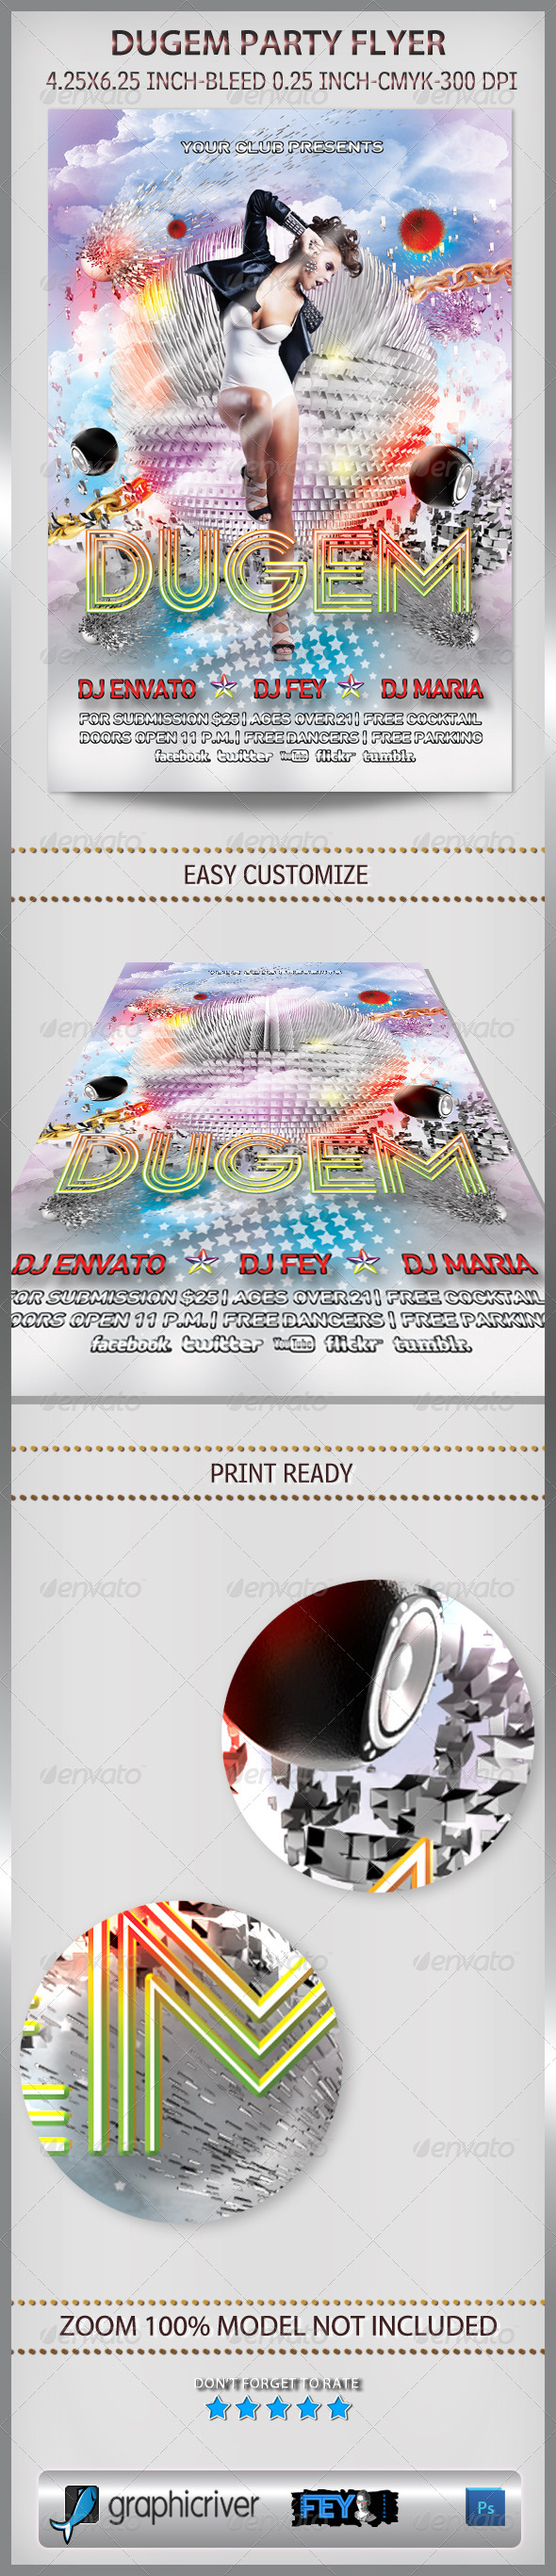 Dugem Party Flyer - Clubs & Parties Events